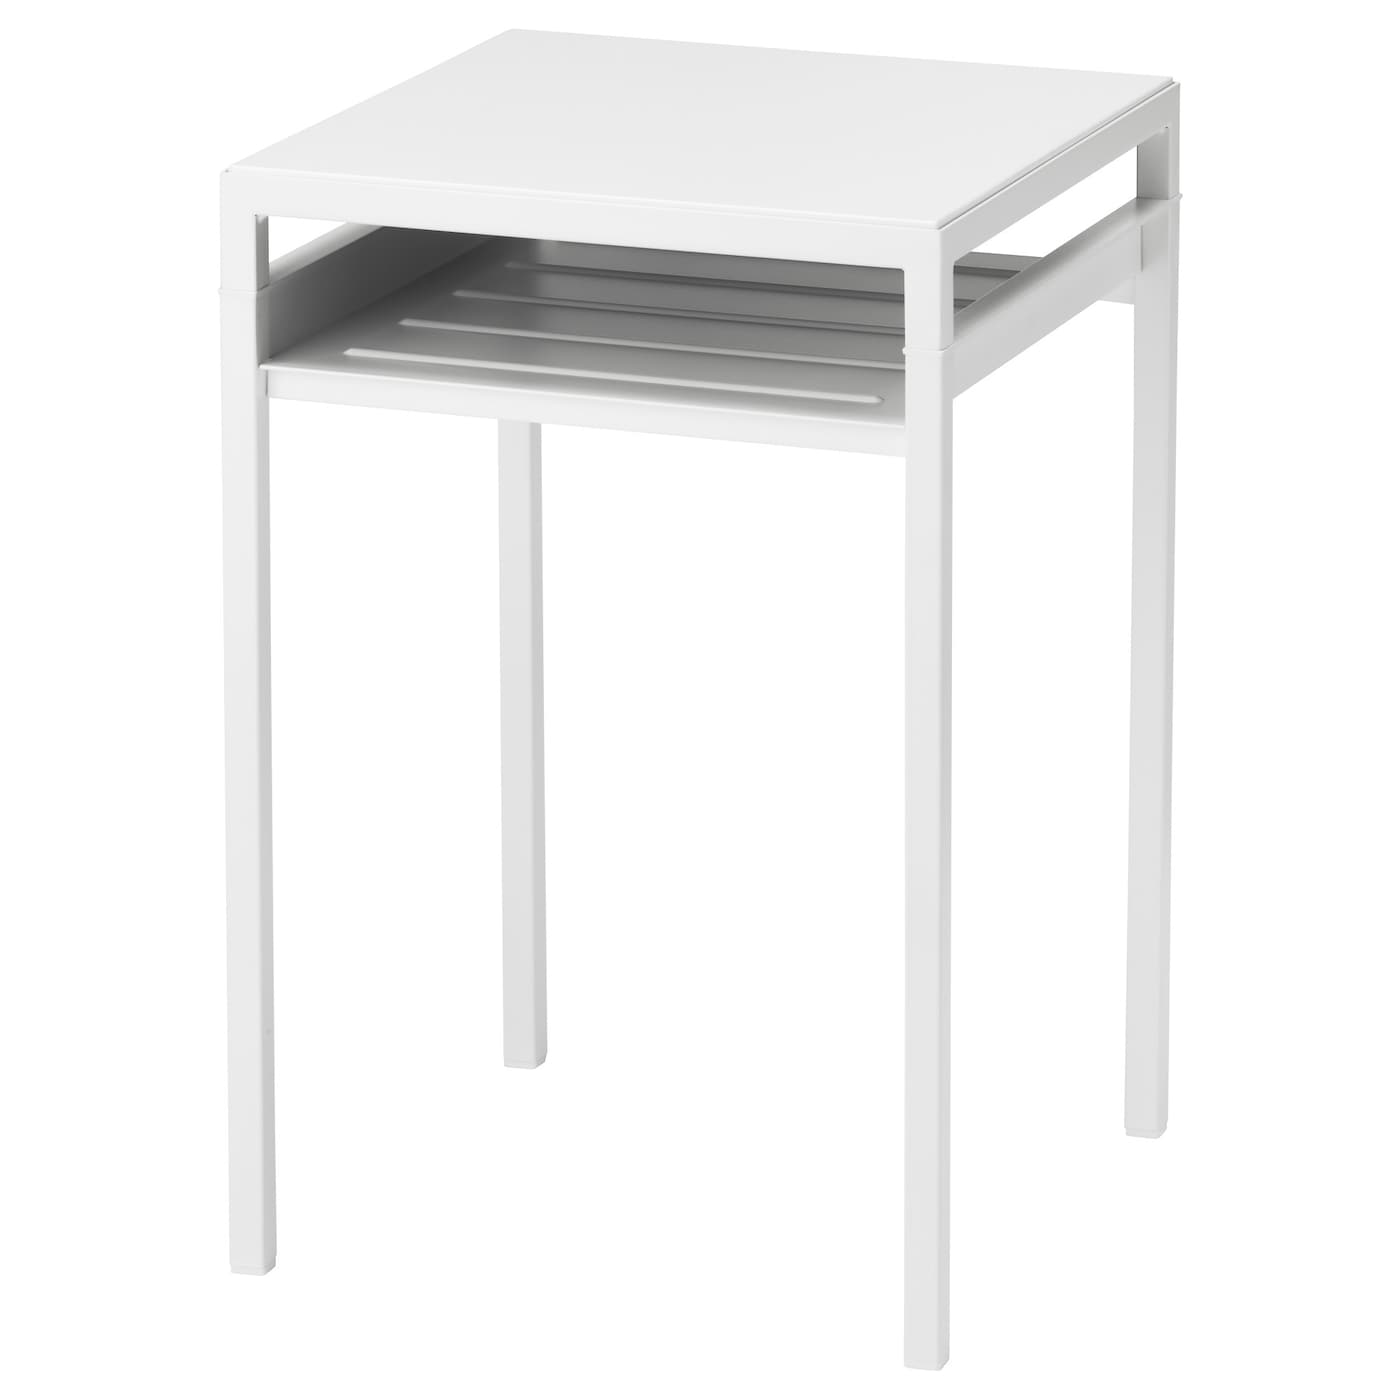 NYBODA Side table w reversible table top White grey 40x40x60 cm IKEA